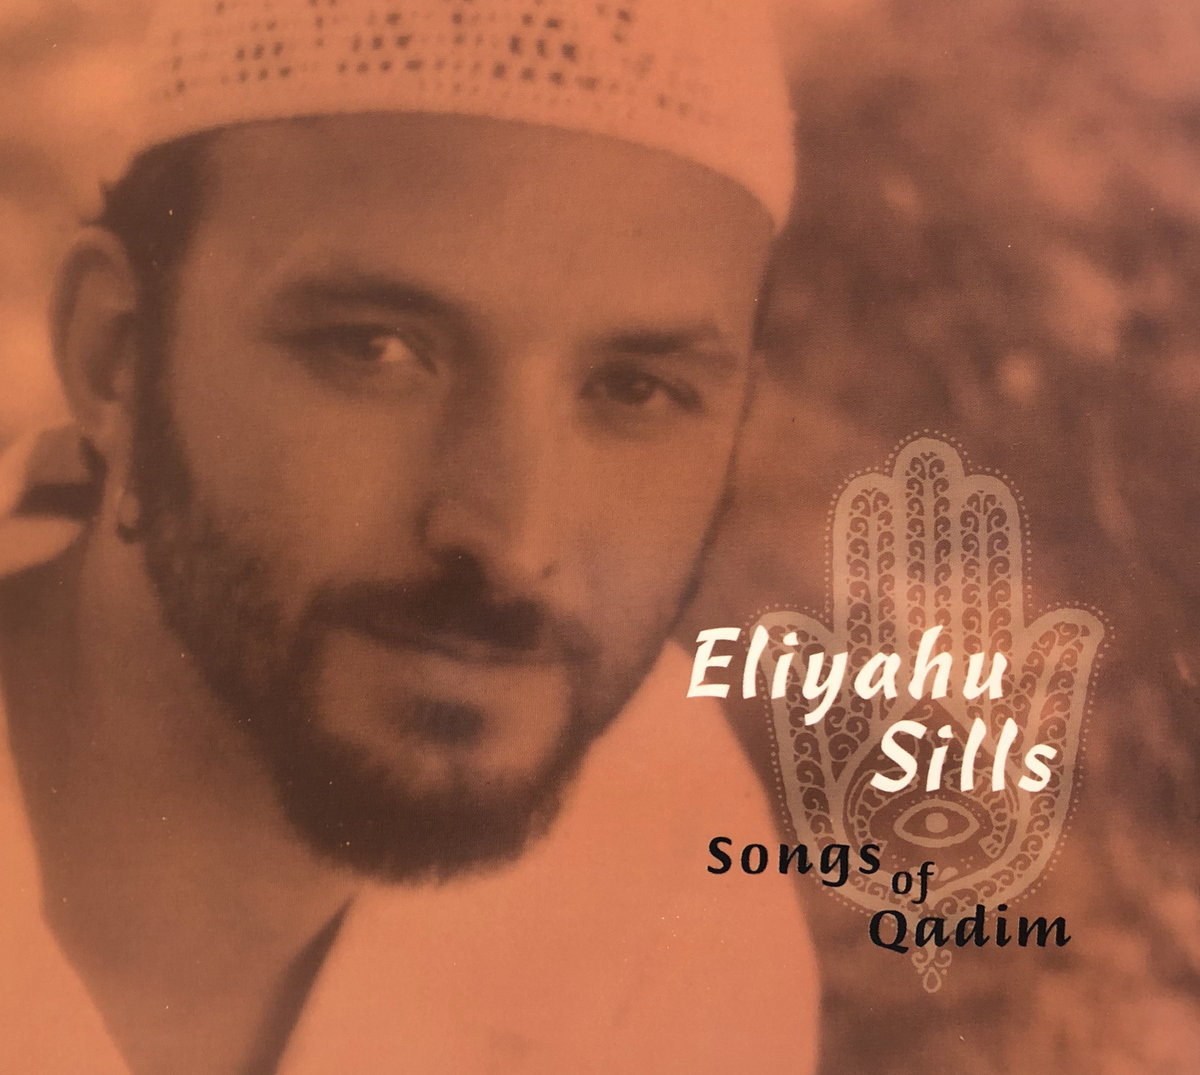 Eliyahu Sills: Songs of Qadim  -  album art